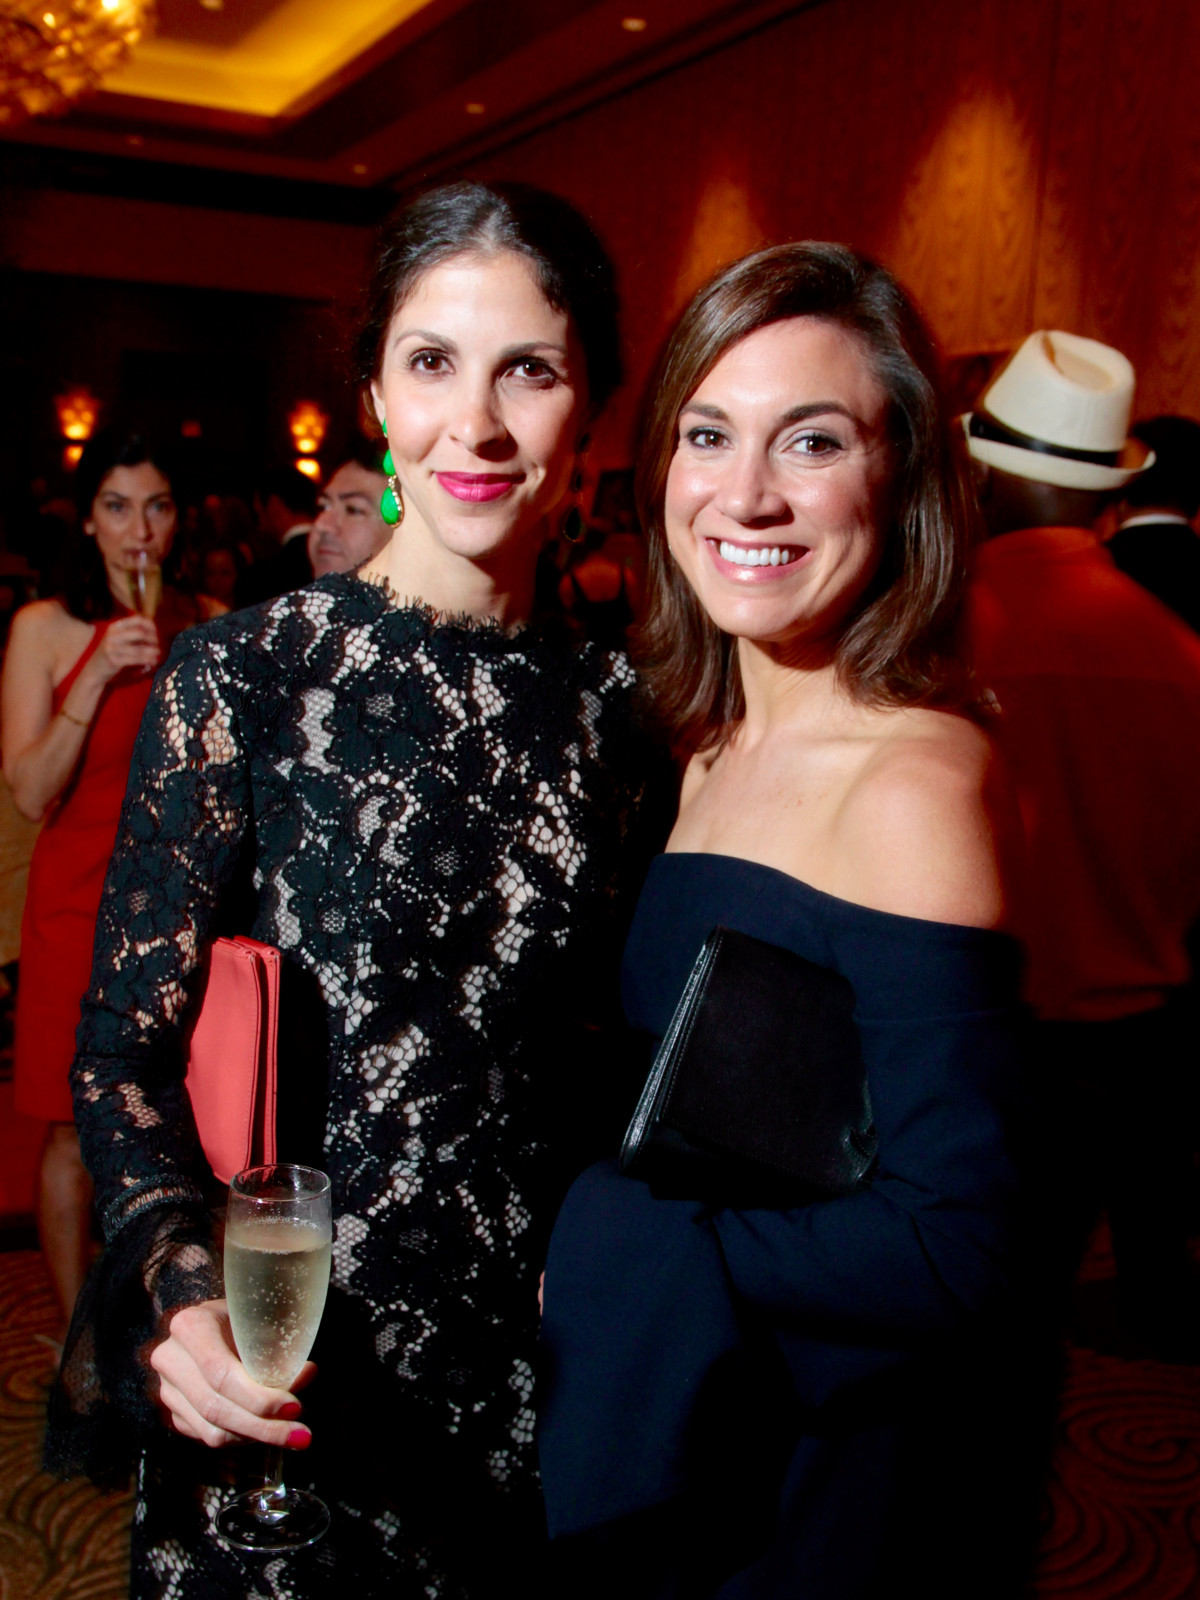 Houston, West University Park Lovers' Ball, February 2018, Scarlett Hankey, Emily Yardley